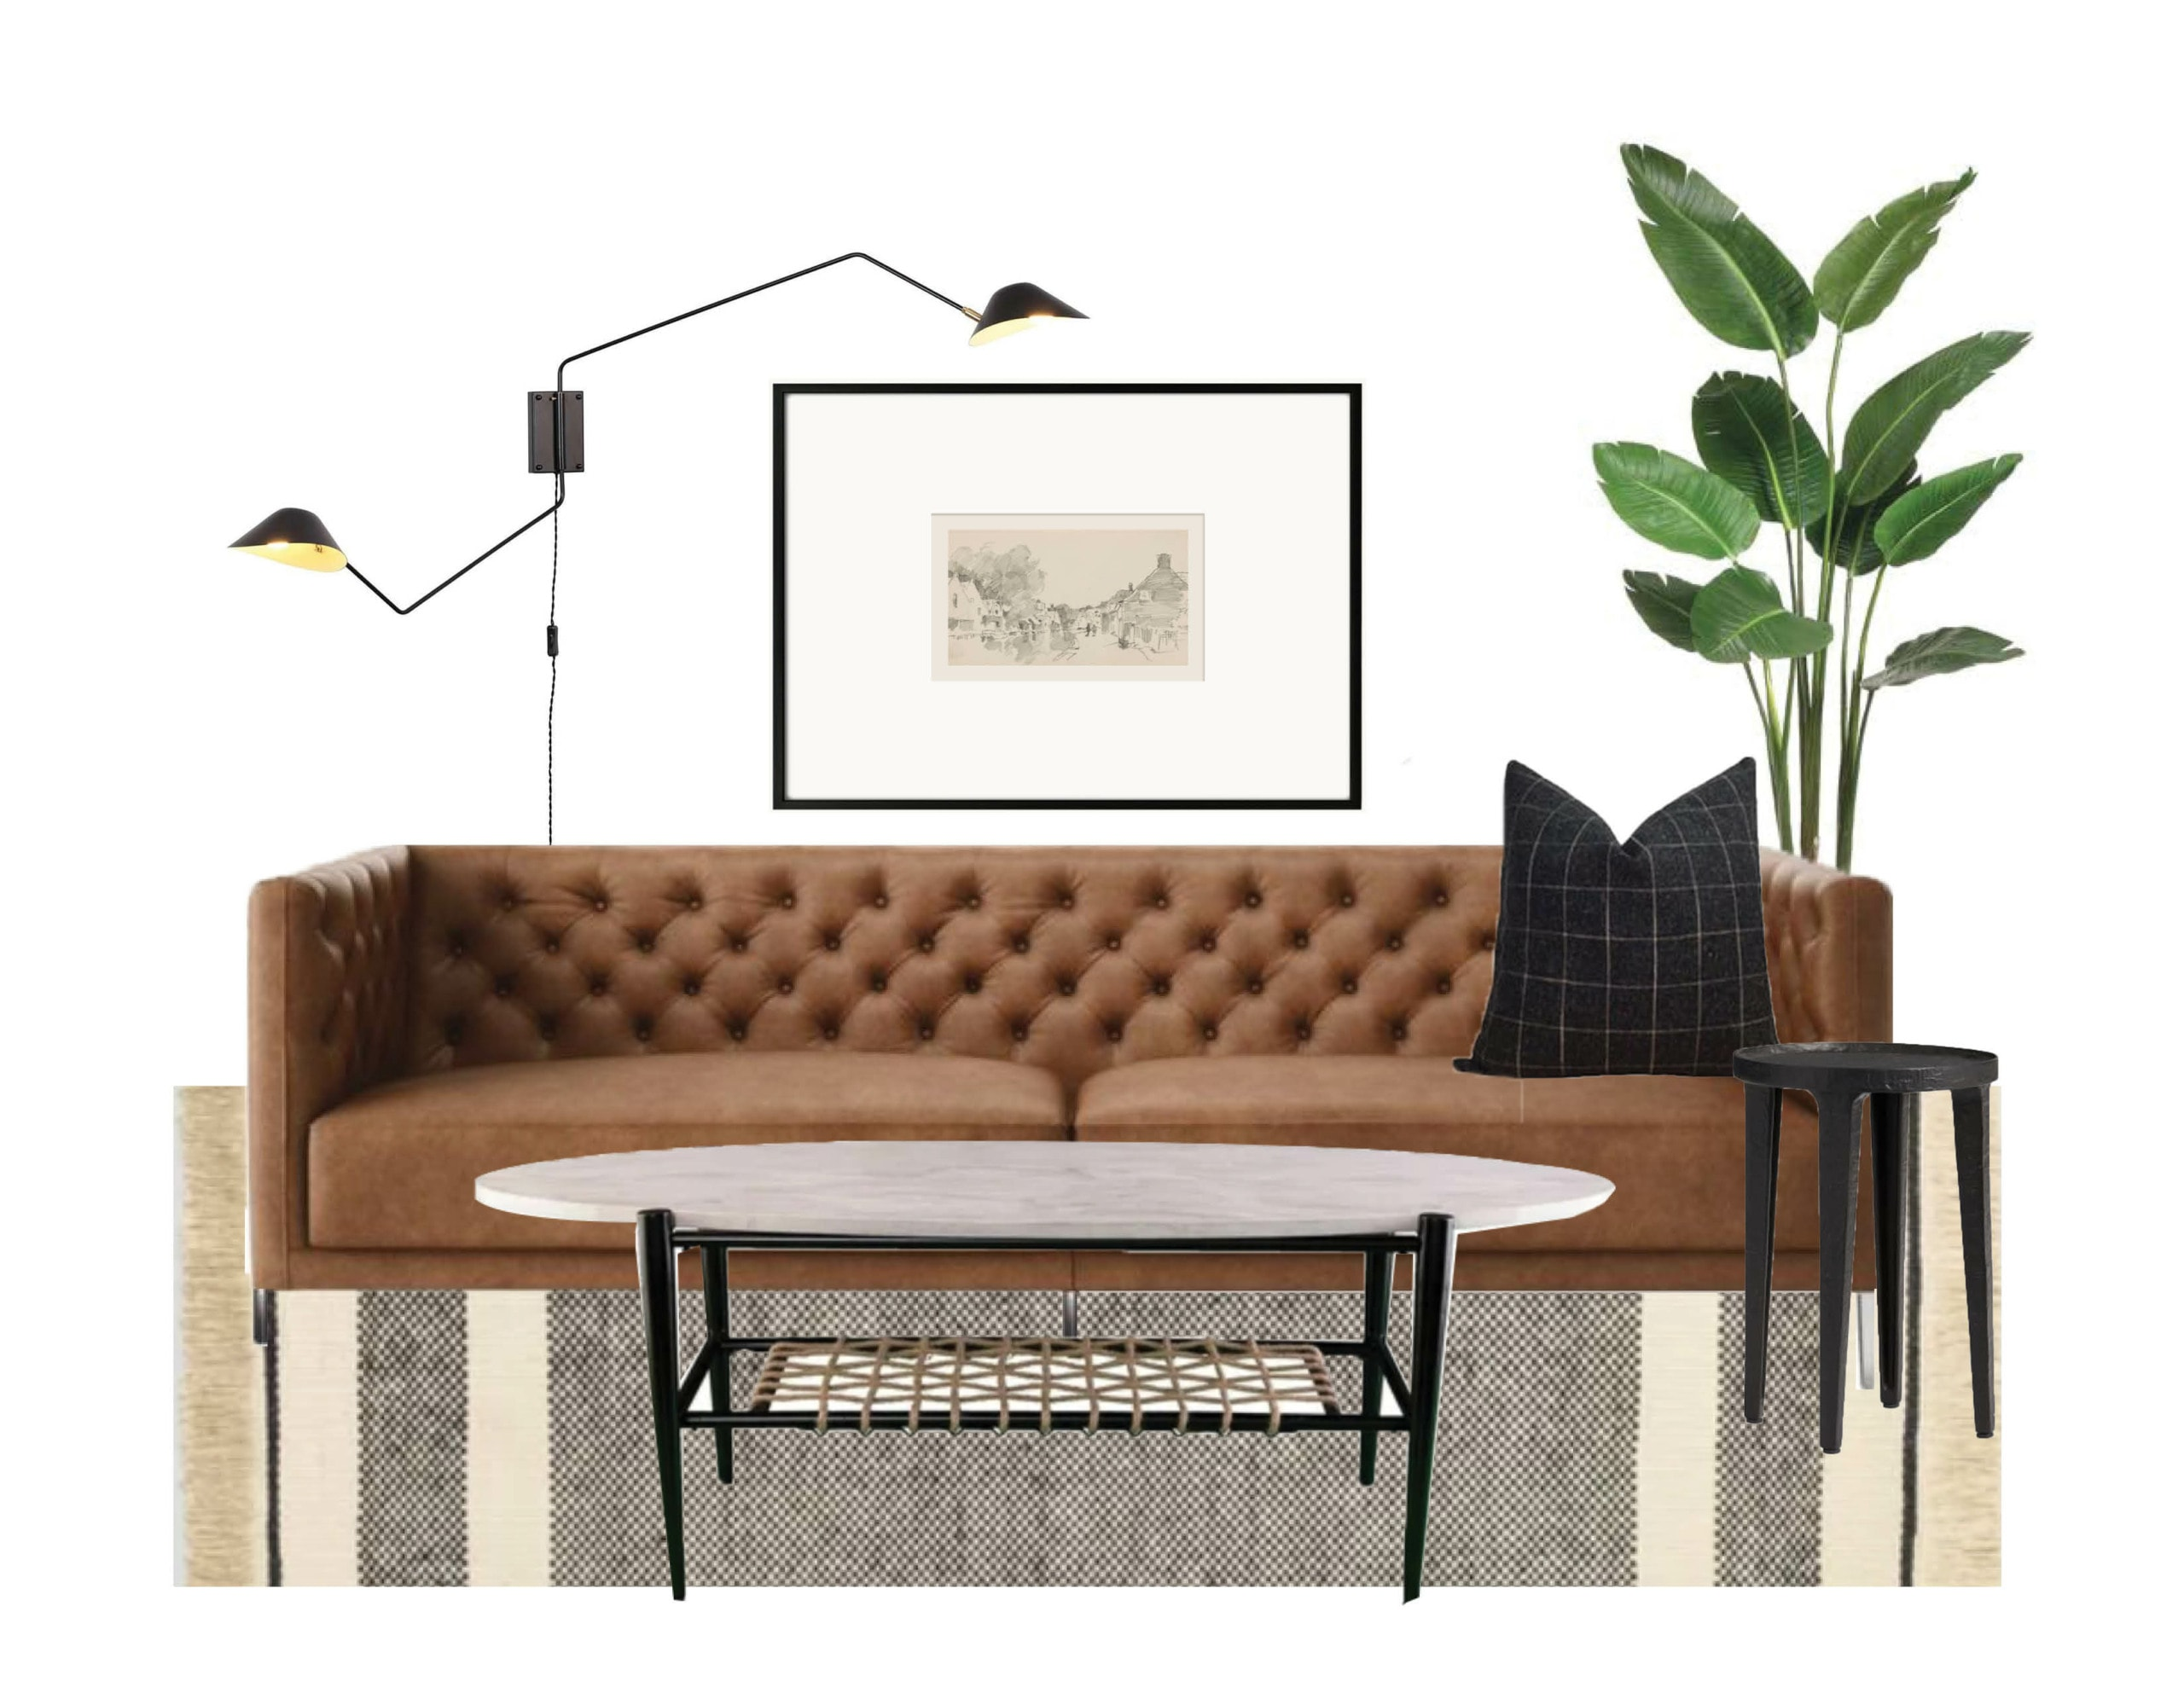 Leather couch in a mid-century modern spanish bungalow